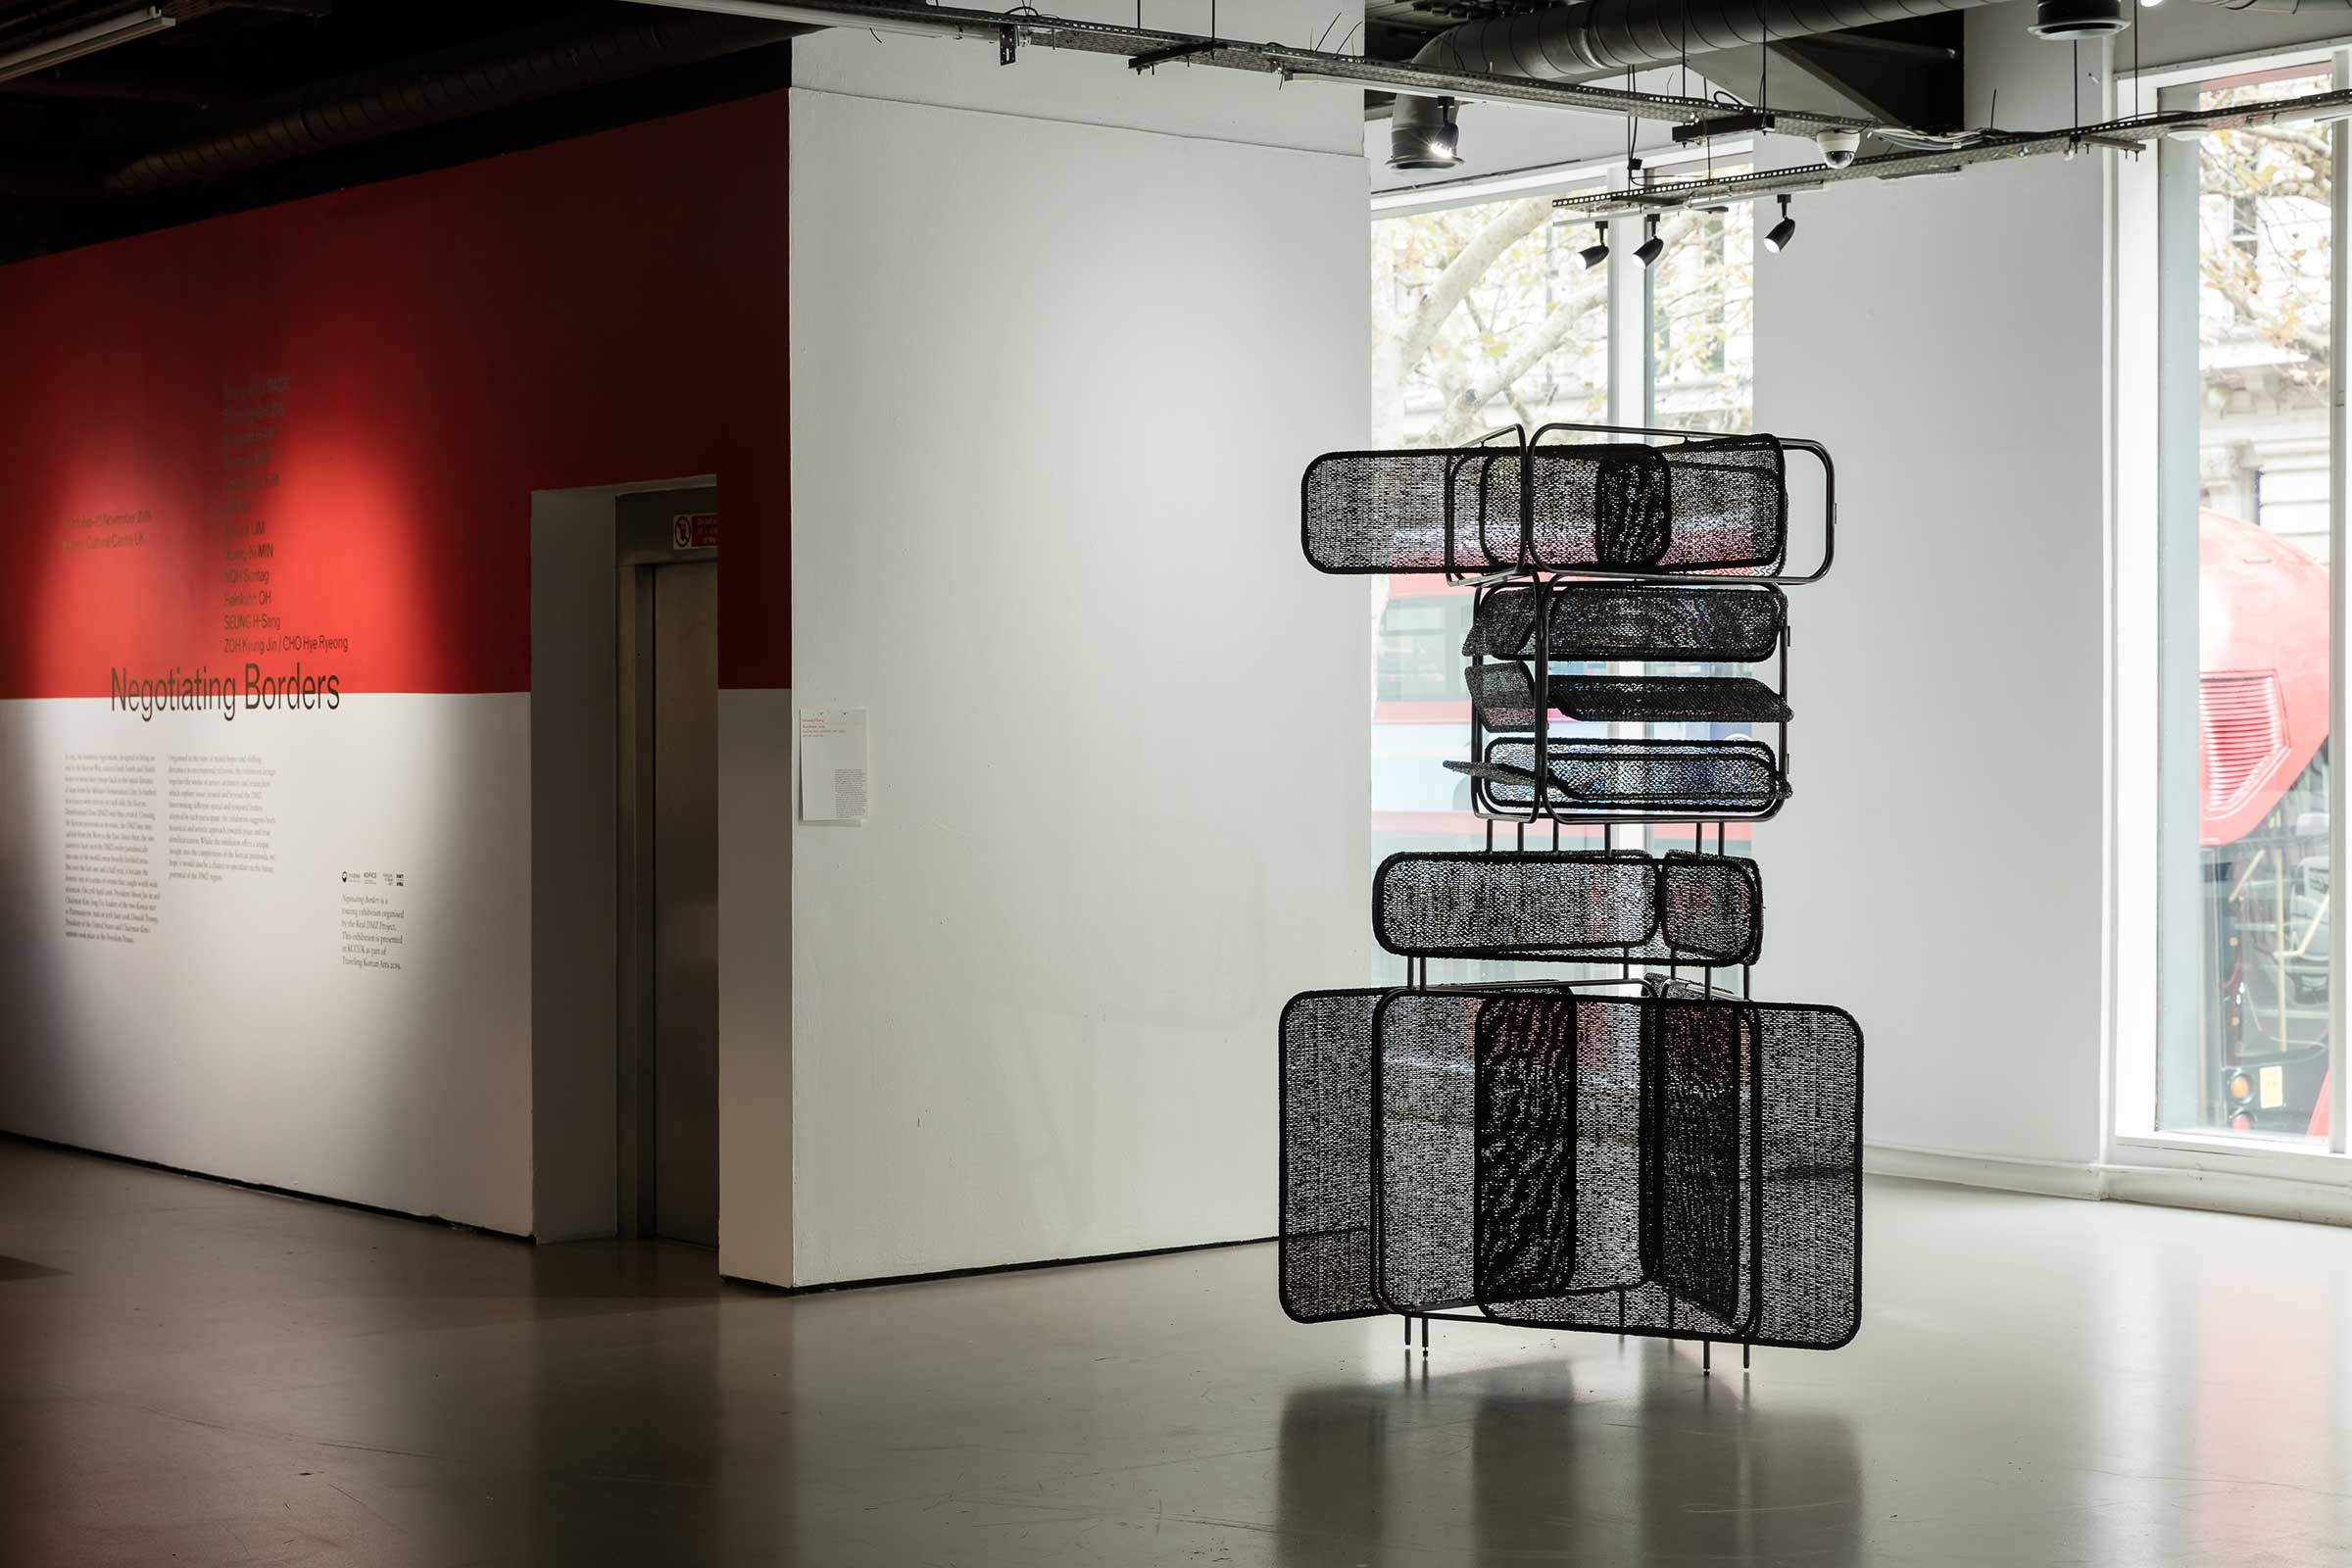 Installation view of Negotiating Borders (2019) at the Korean Cultural Centre UK. Image by Dan Weil. Courtesy of the artists and the Korean Cultural Centre UK